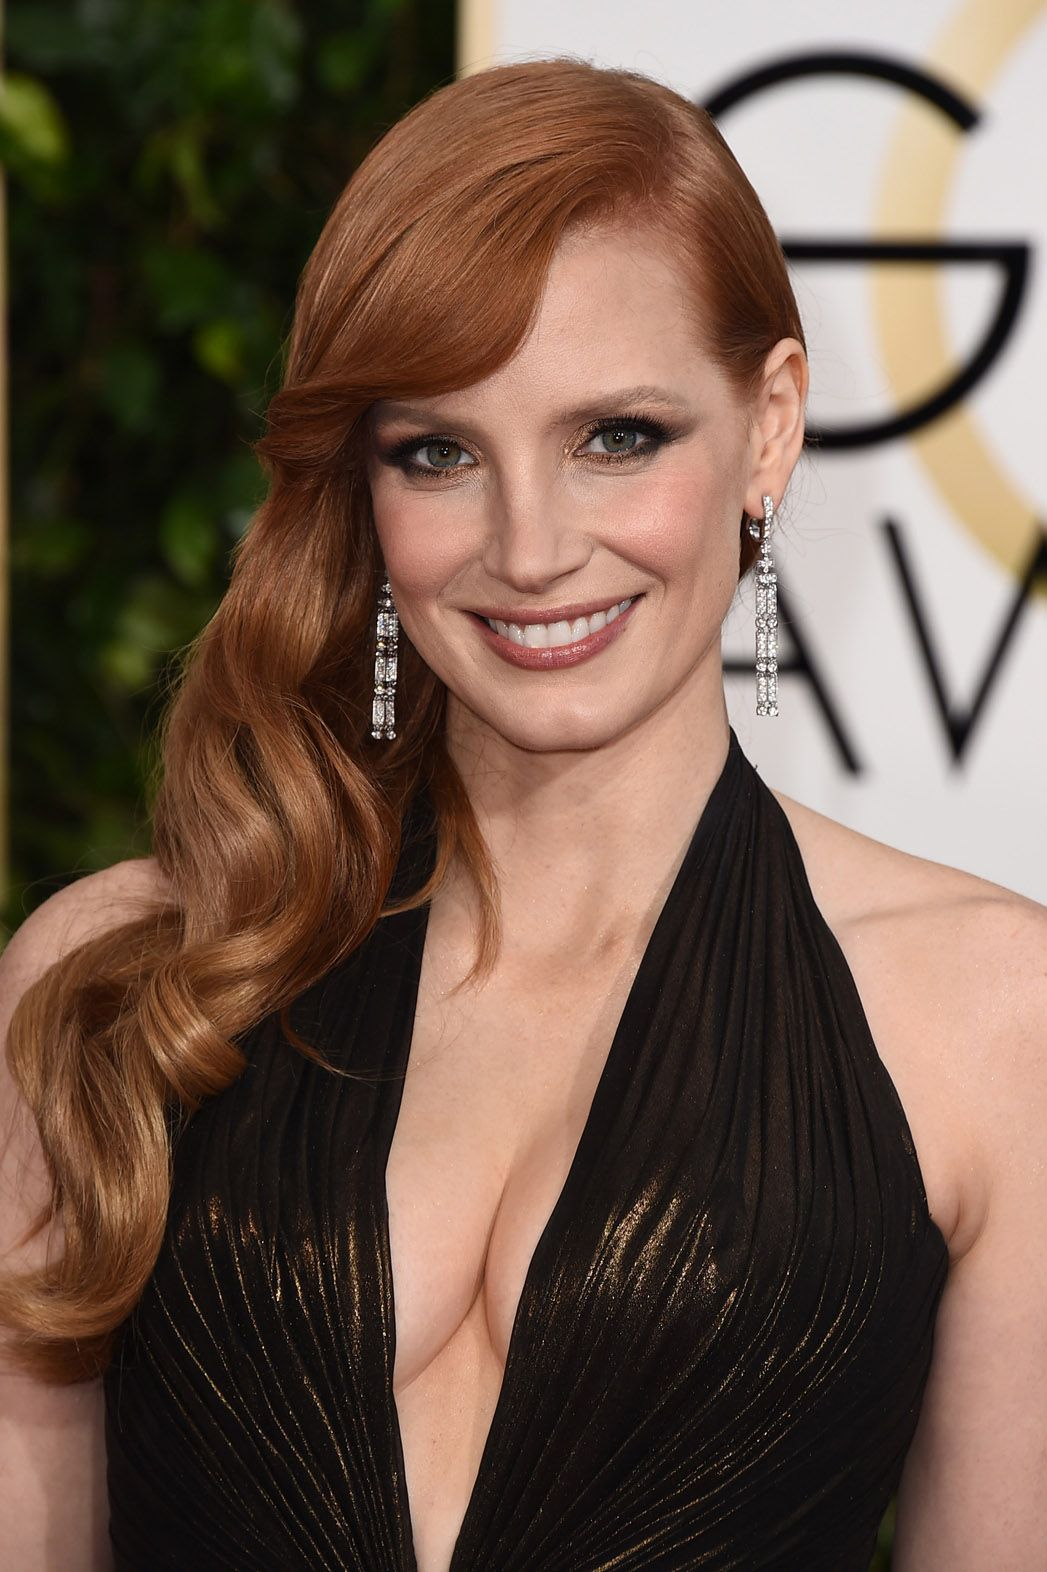 Photos Jessica Chastain nude (16 foto and video), Tits, Paparazzi, Selfie, swimsuit 2006